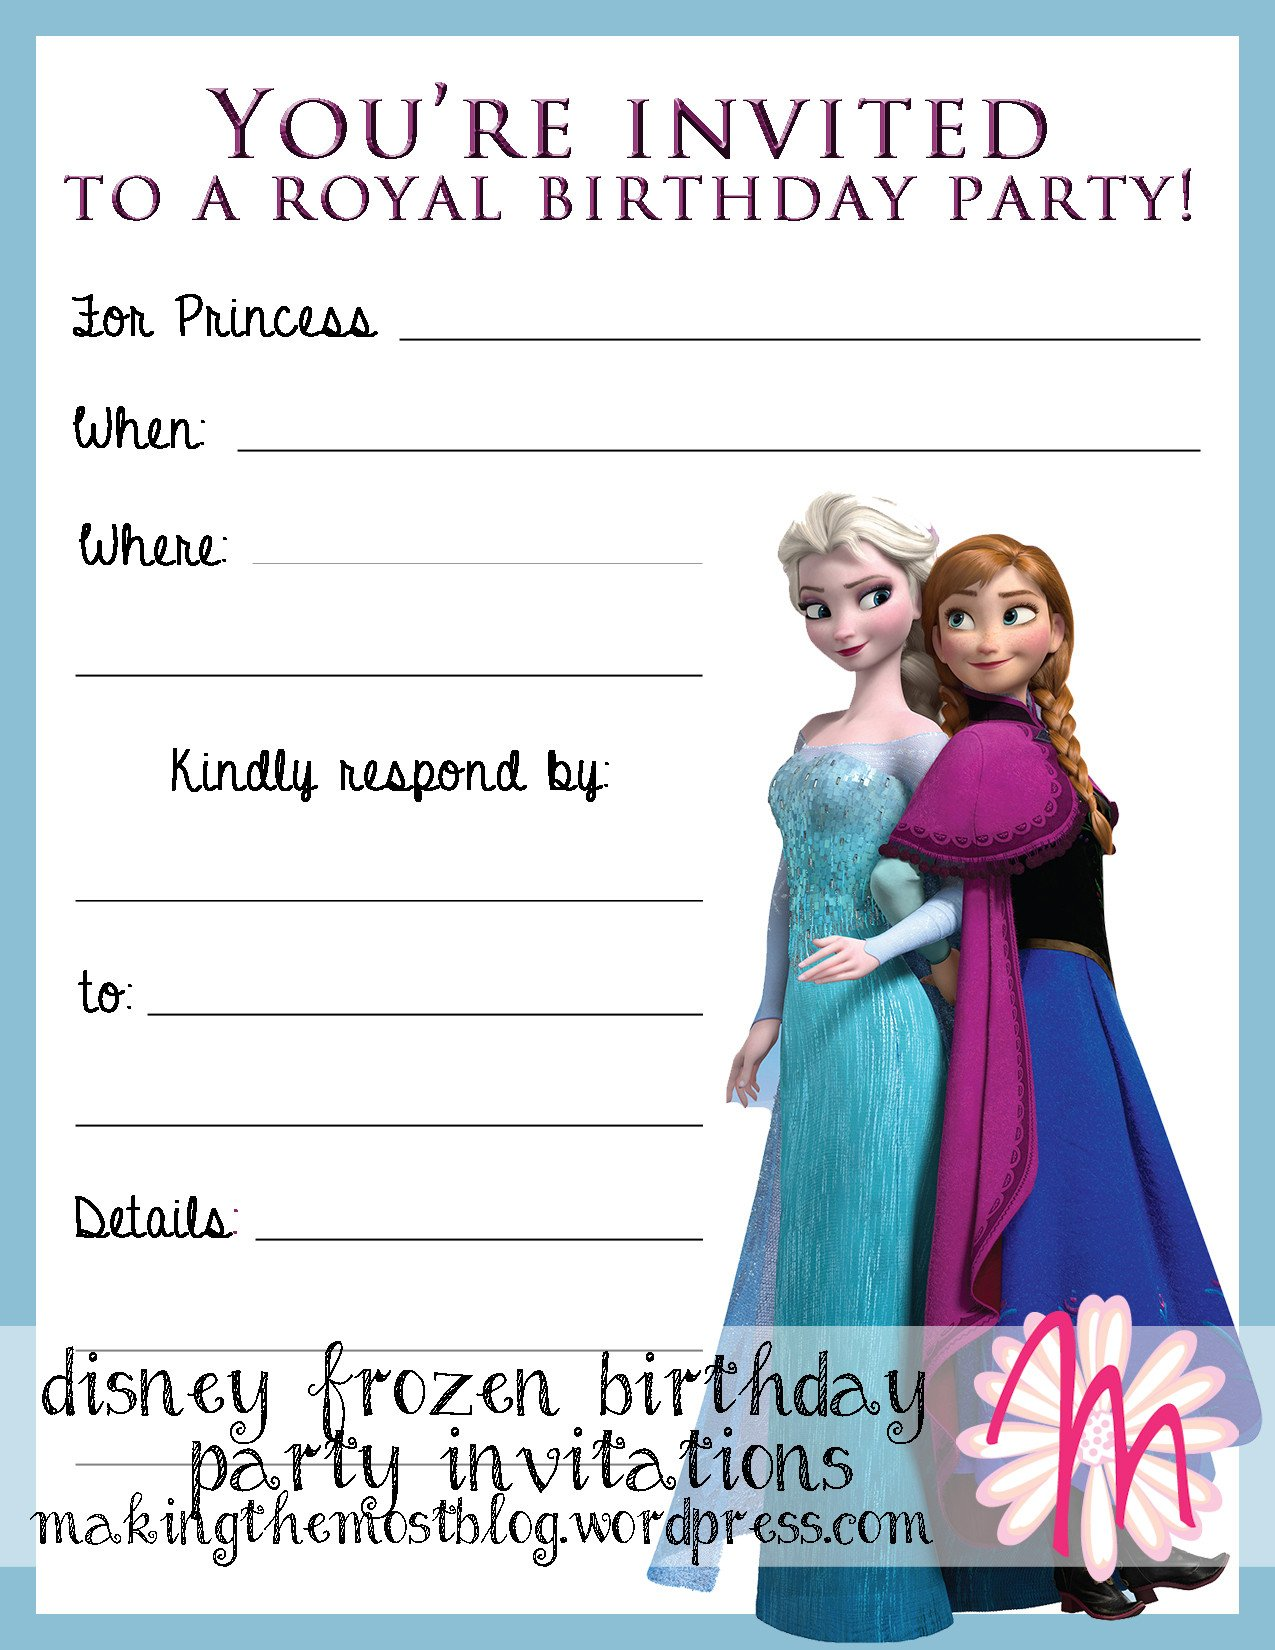 Frozen Bday Party Invitations 301 Moved Permanently